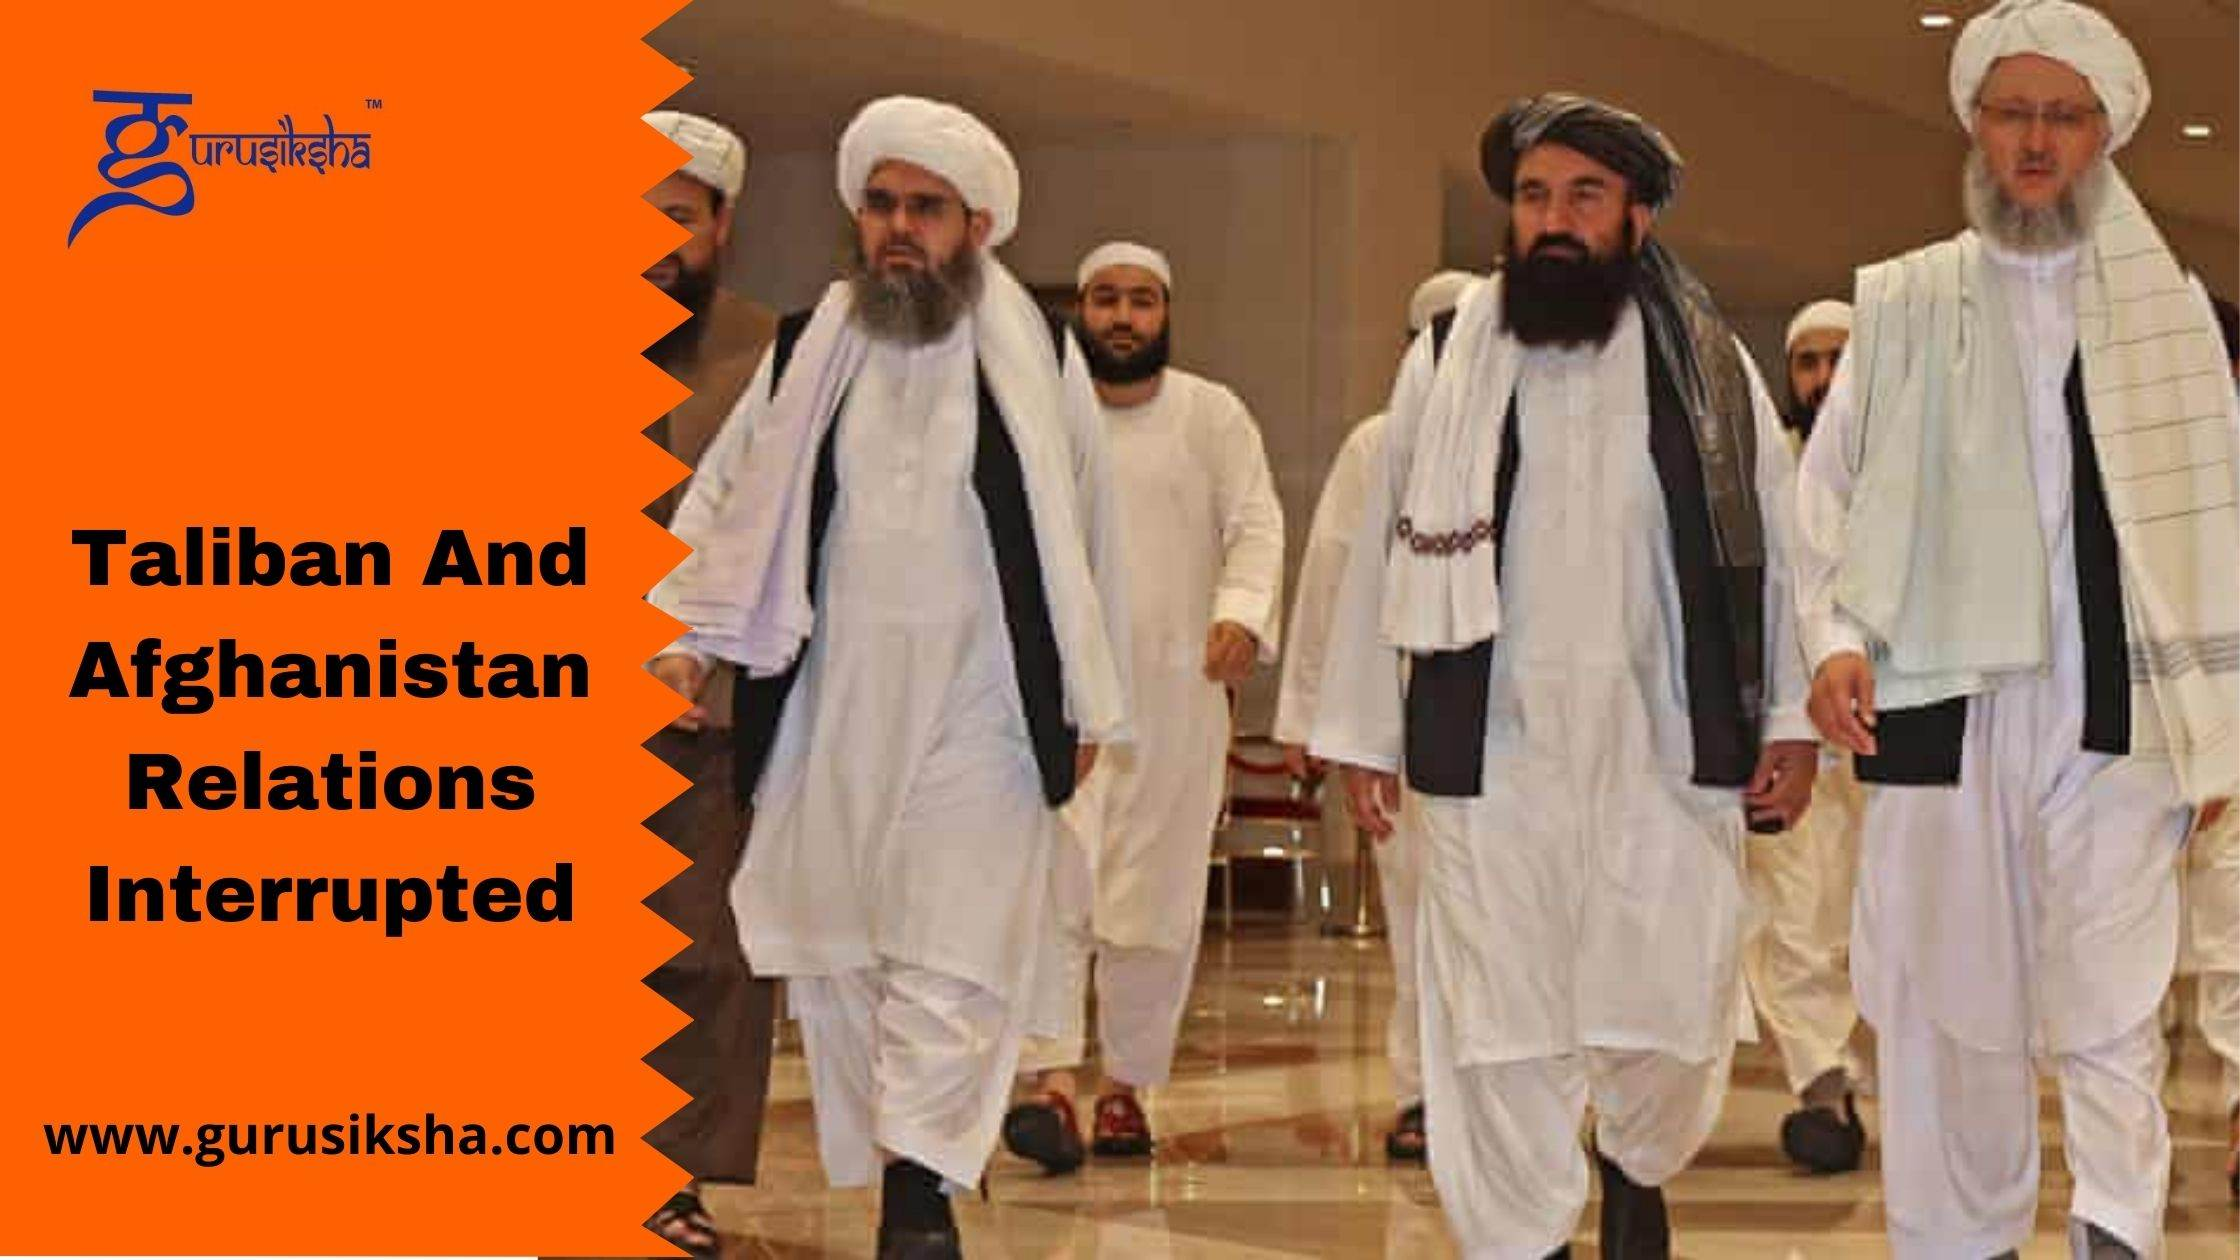 Taliban And Afghanistan Relations Interrupted